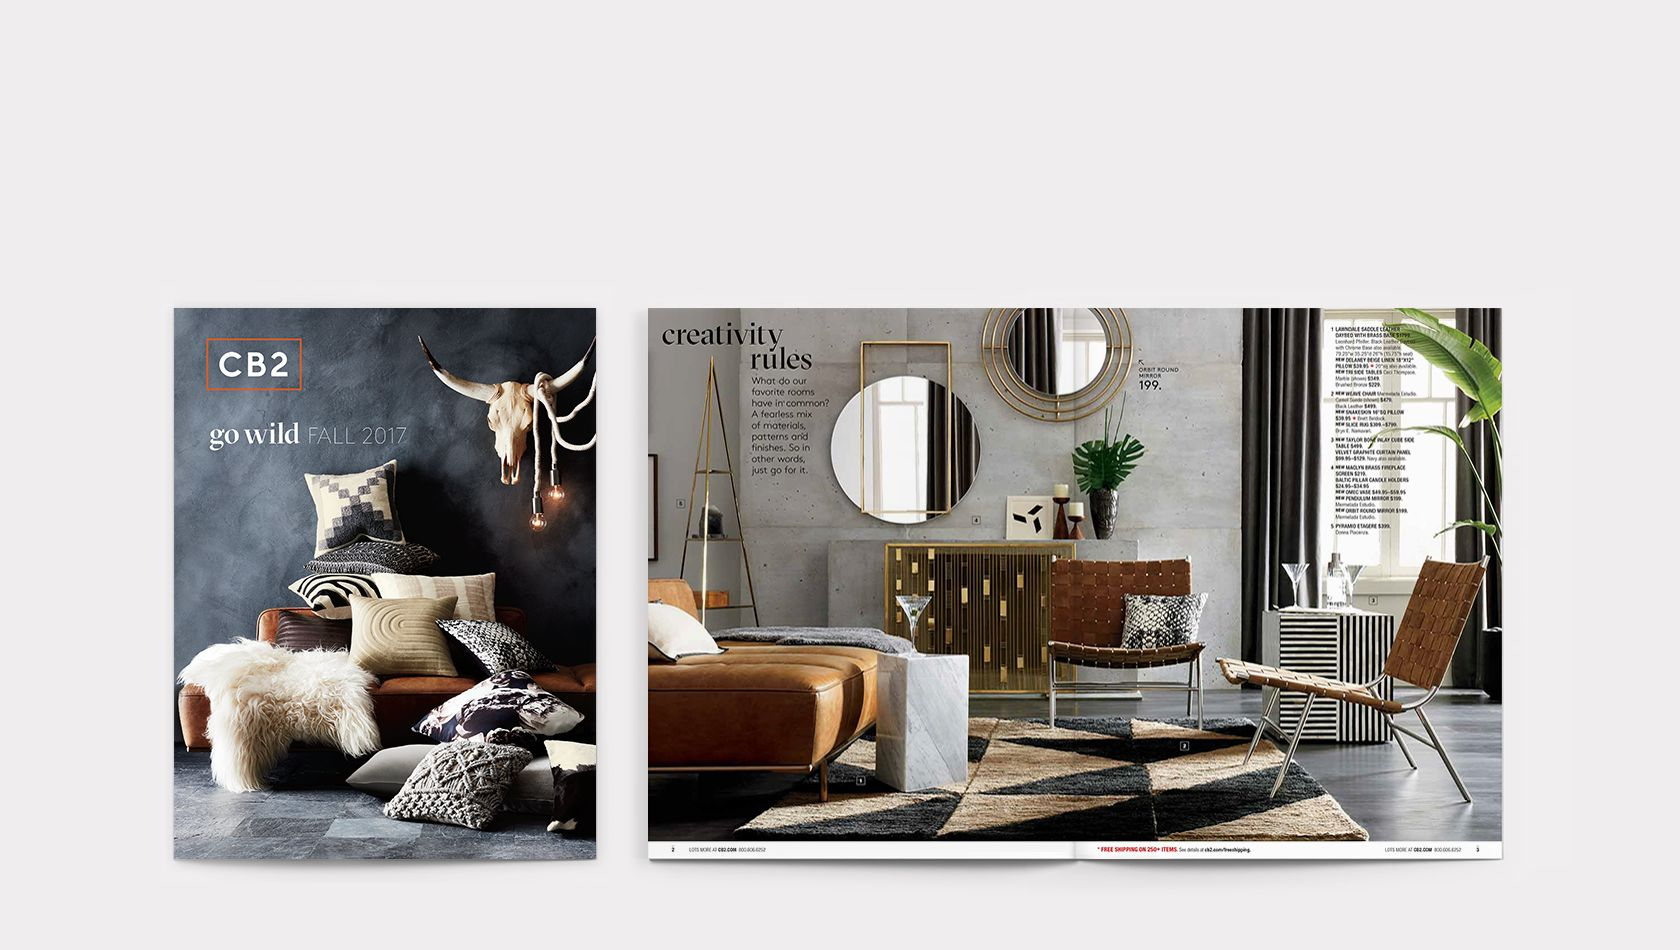 lookbook. Modern Furniture and Home Decor   CB2